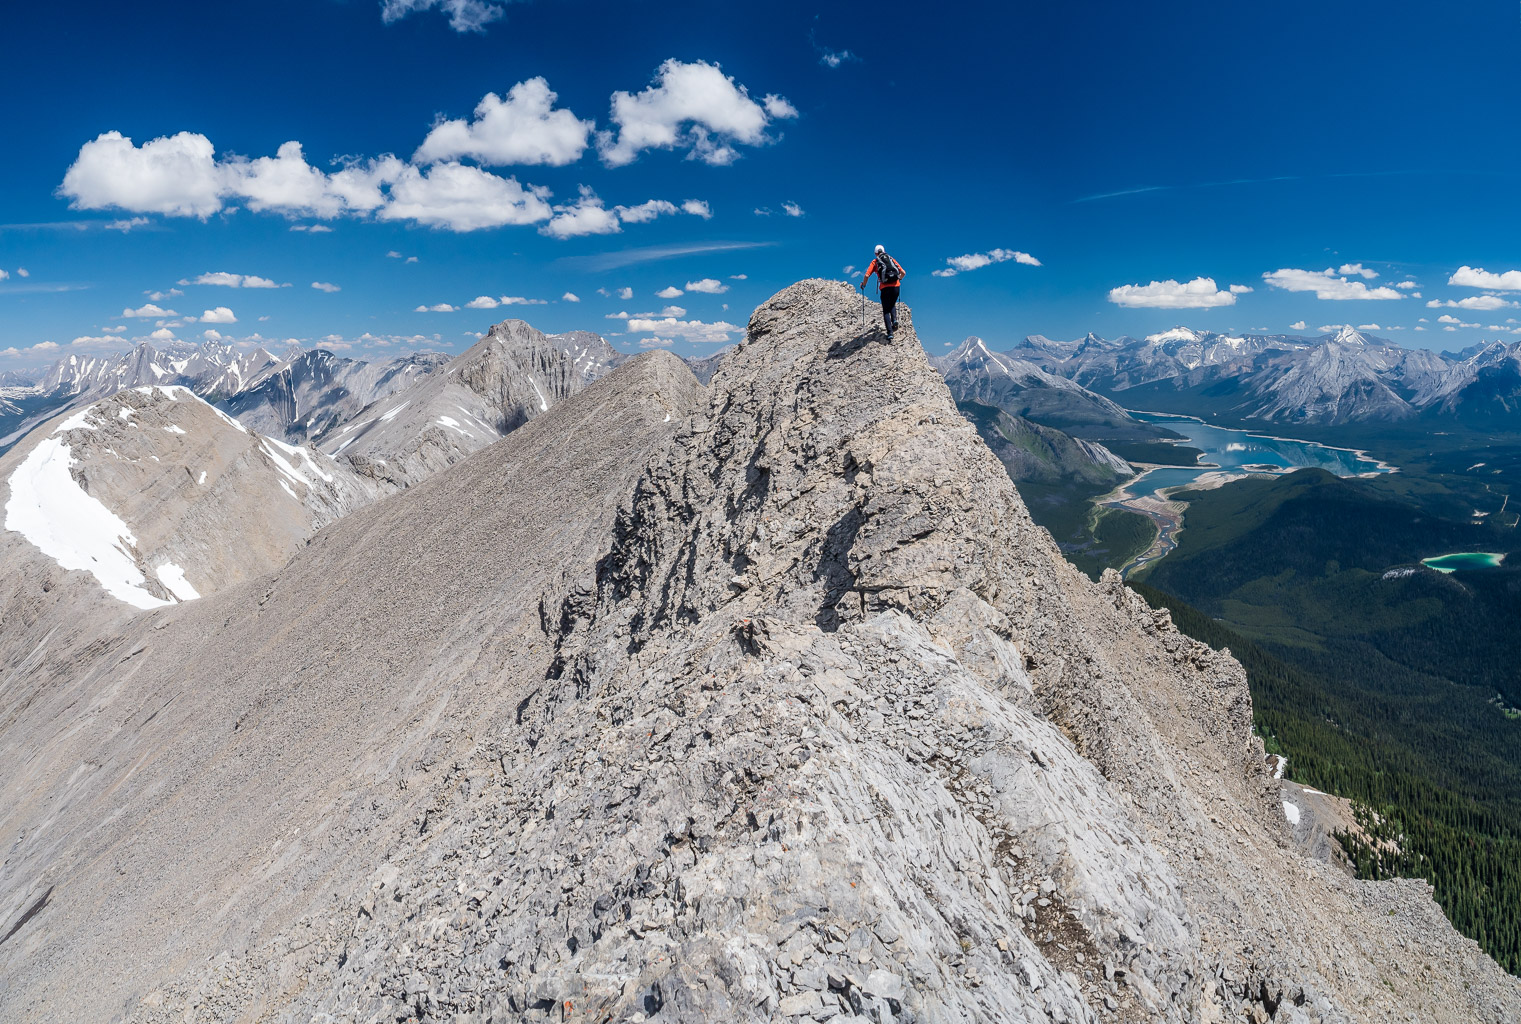 Some surprising exposure on the traverse. The options were exposure or steep slabs with scree to our left.